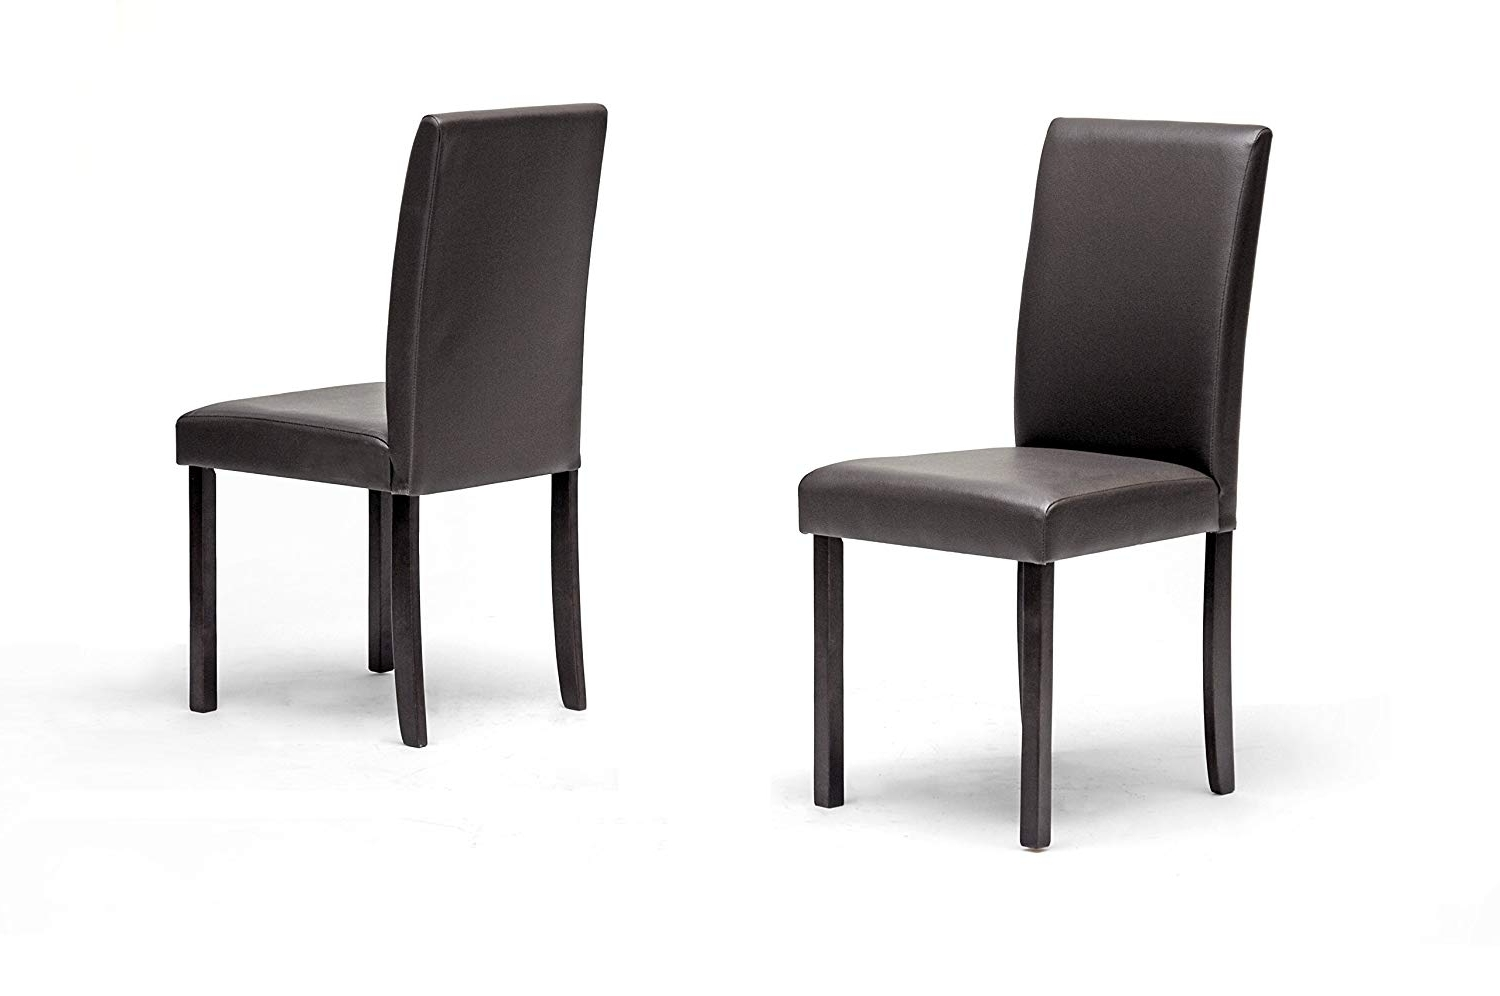 Dark Brown Leather Dining Chairs Intended For Most Recently Released Amazon – Baxton Studio Andrew Modern Dining Chair, Set Of 2 – Chairs (Gallery 18 of 25)